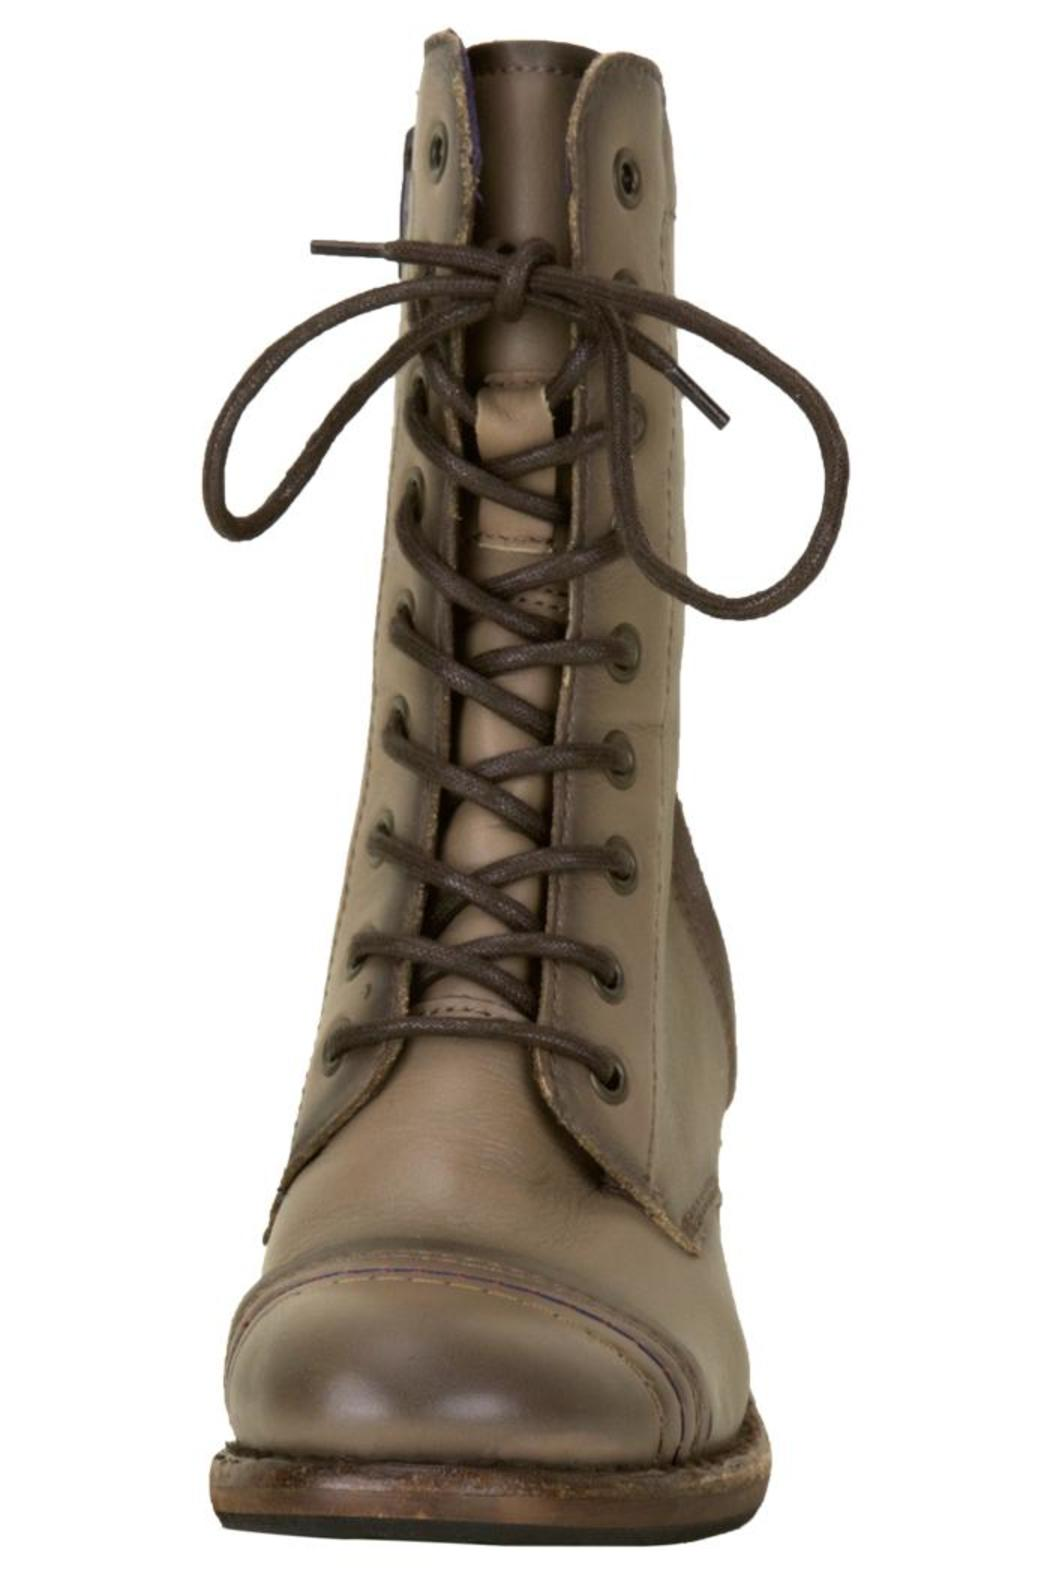 Taos Fab Boot Back Cropped Image